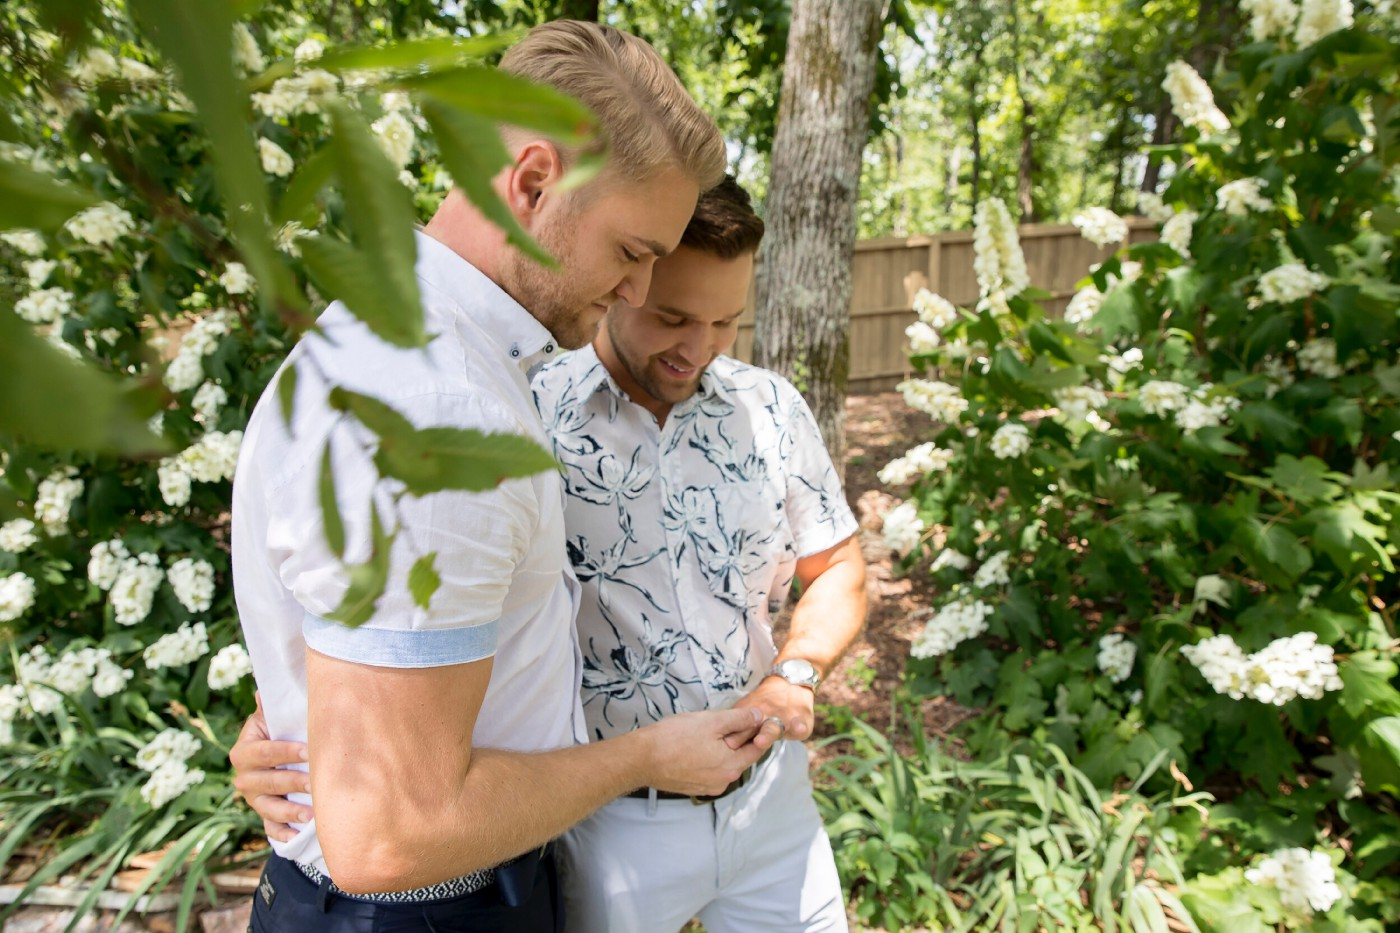 Two gay men in a wood; one giving the other a ring.